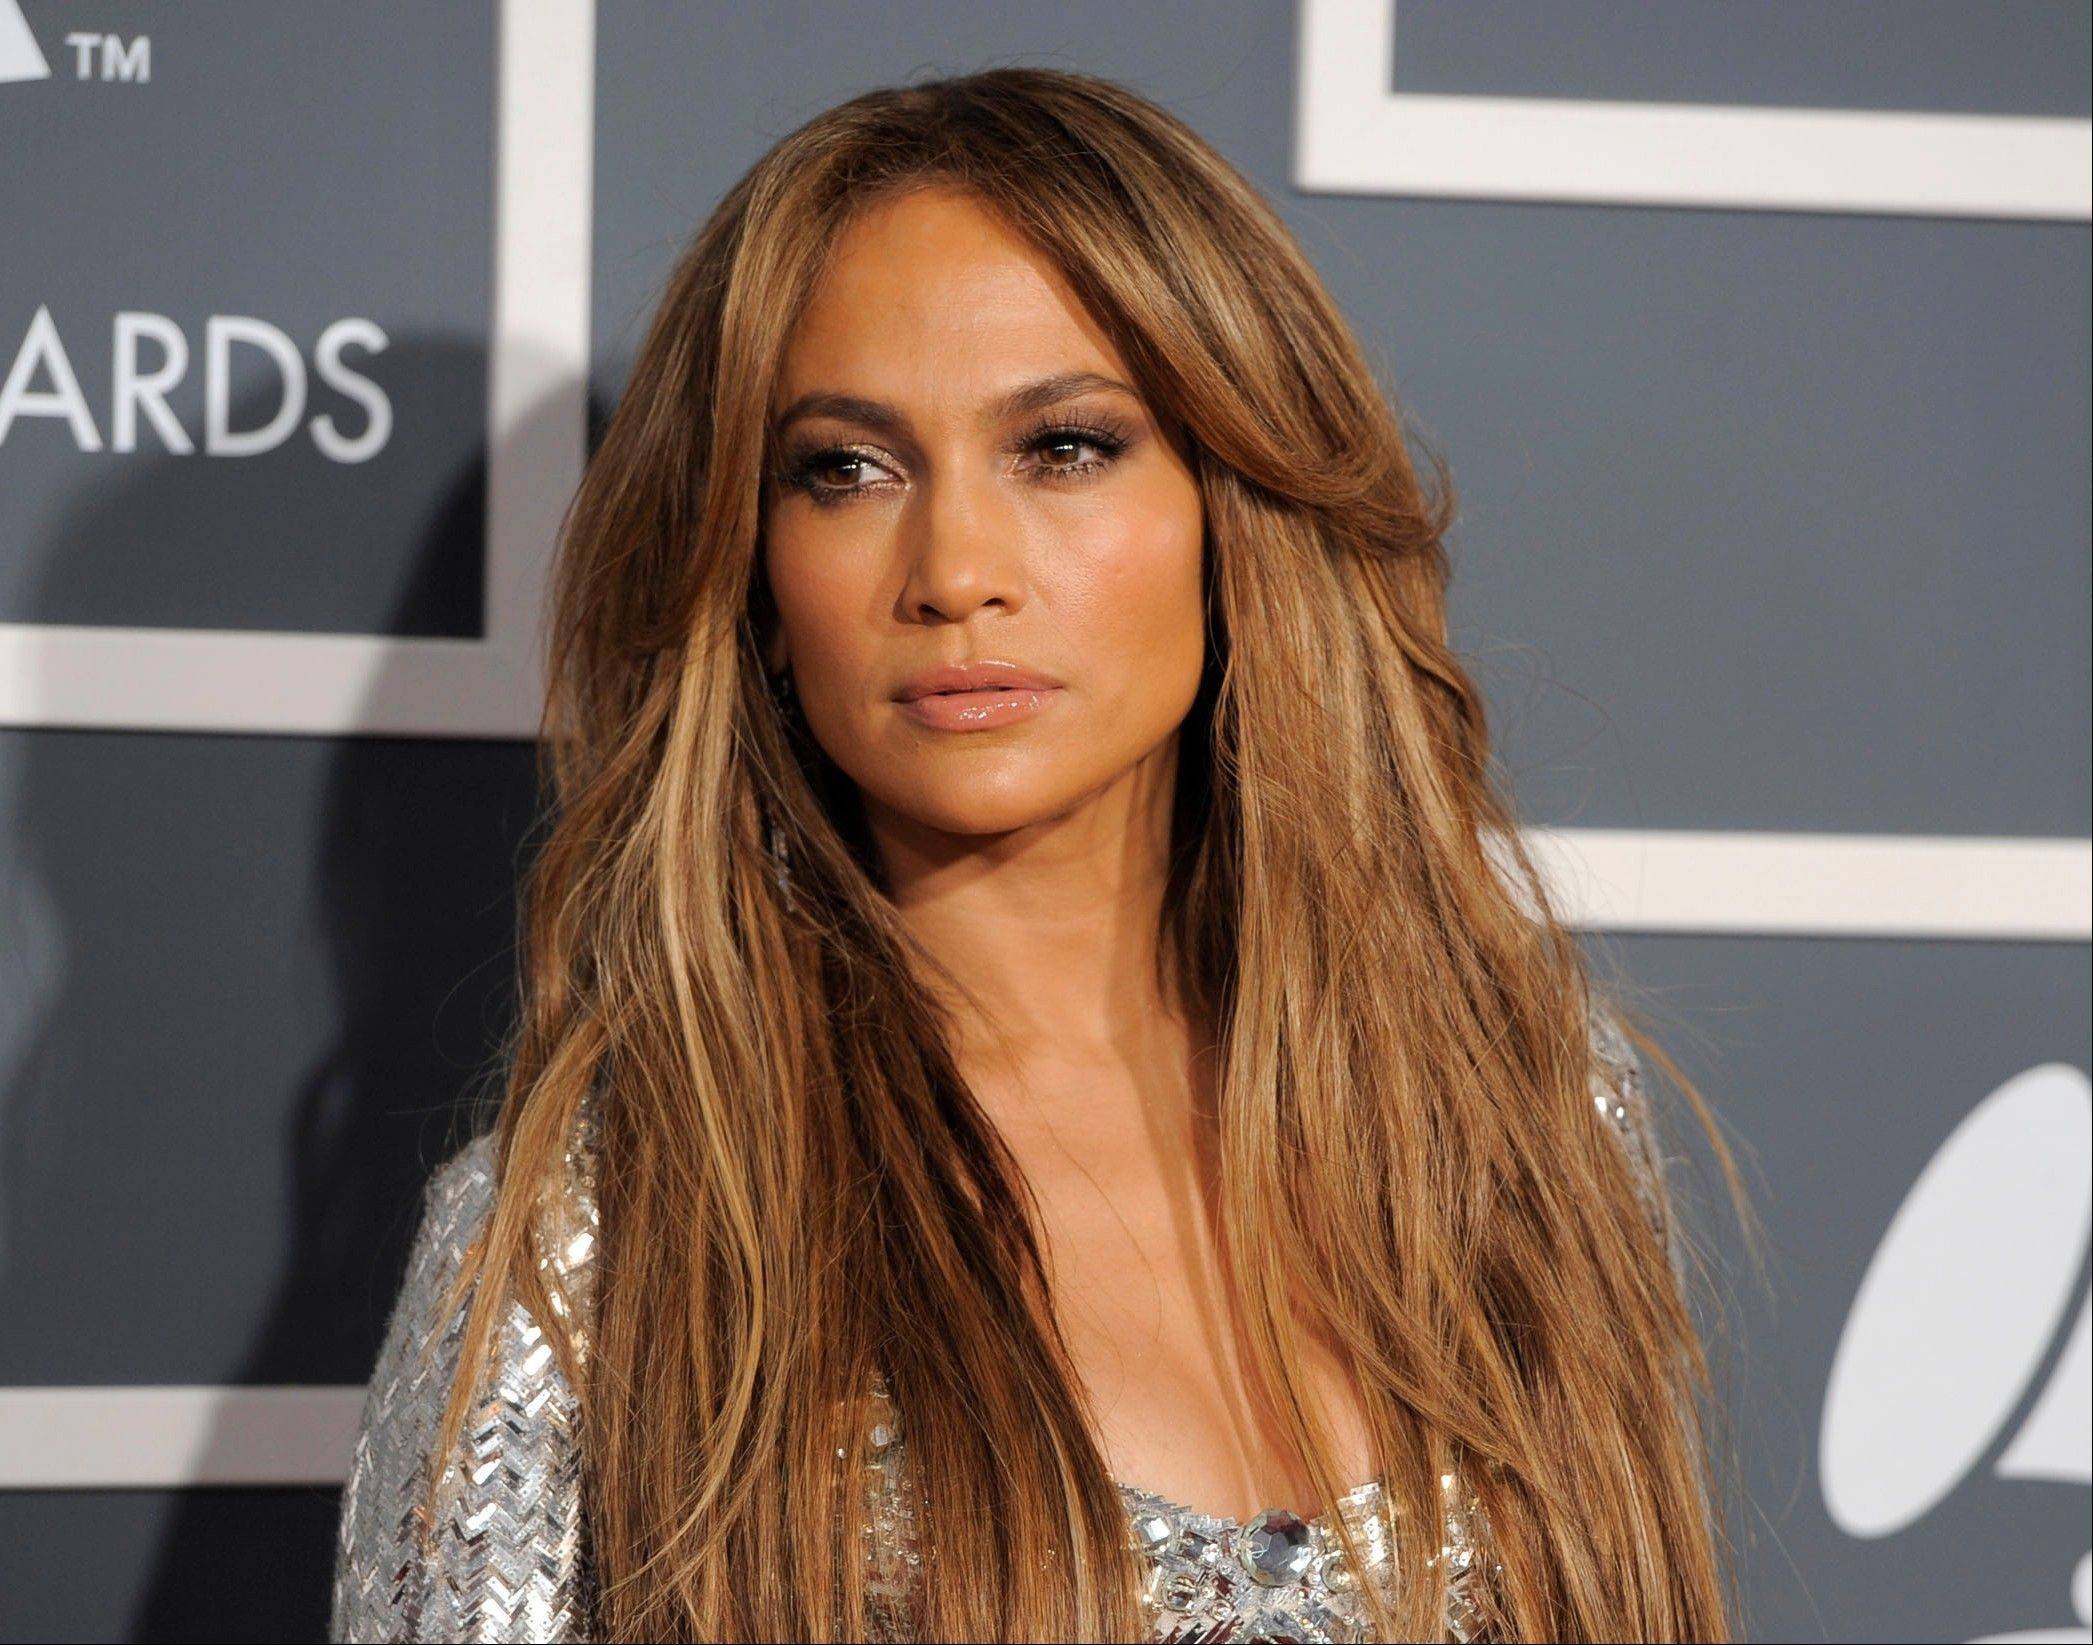 Police say an intruder had been living for a week on Jennifer Lopez�s property in the Hamptons while she was away.